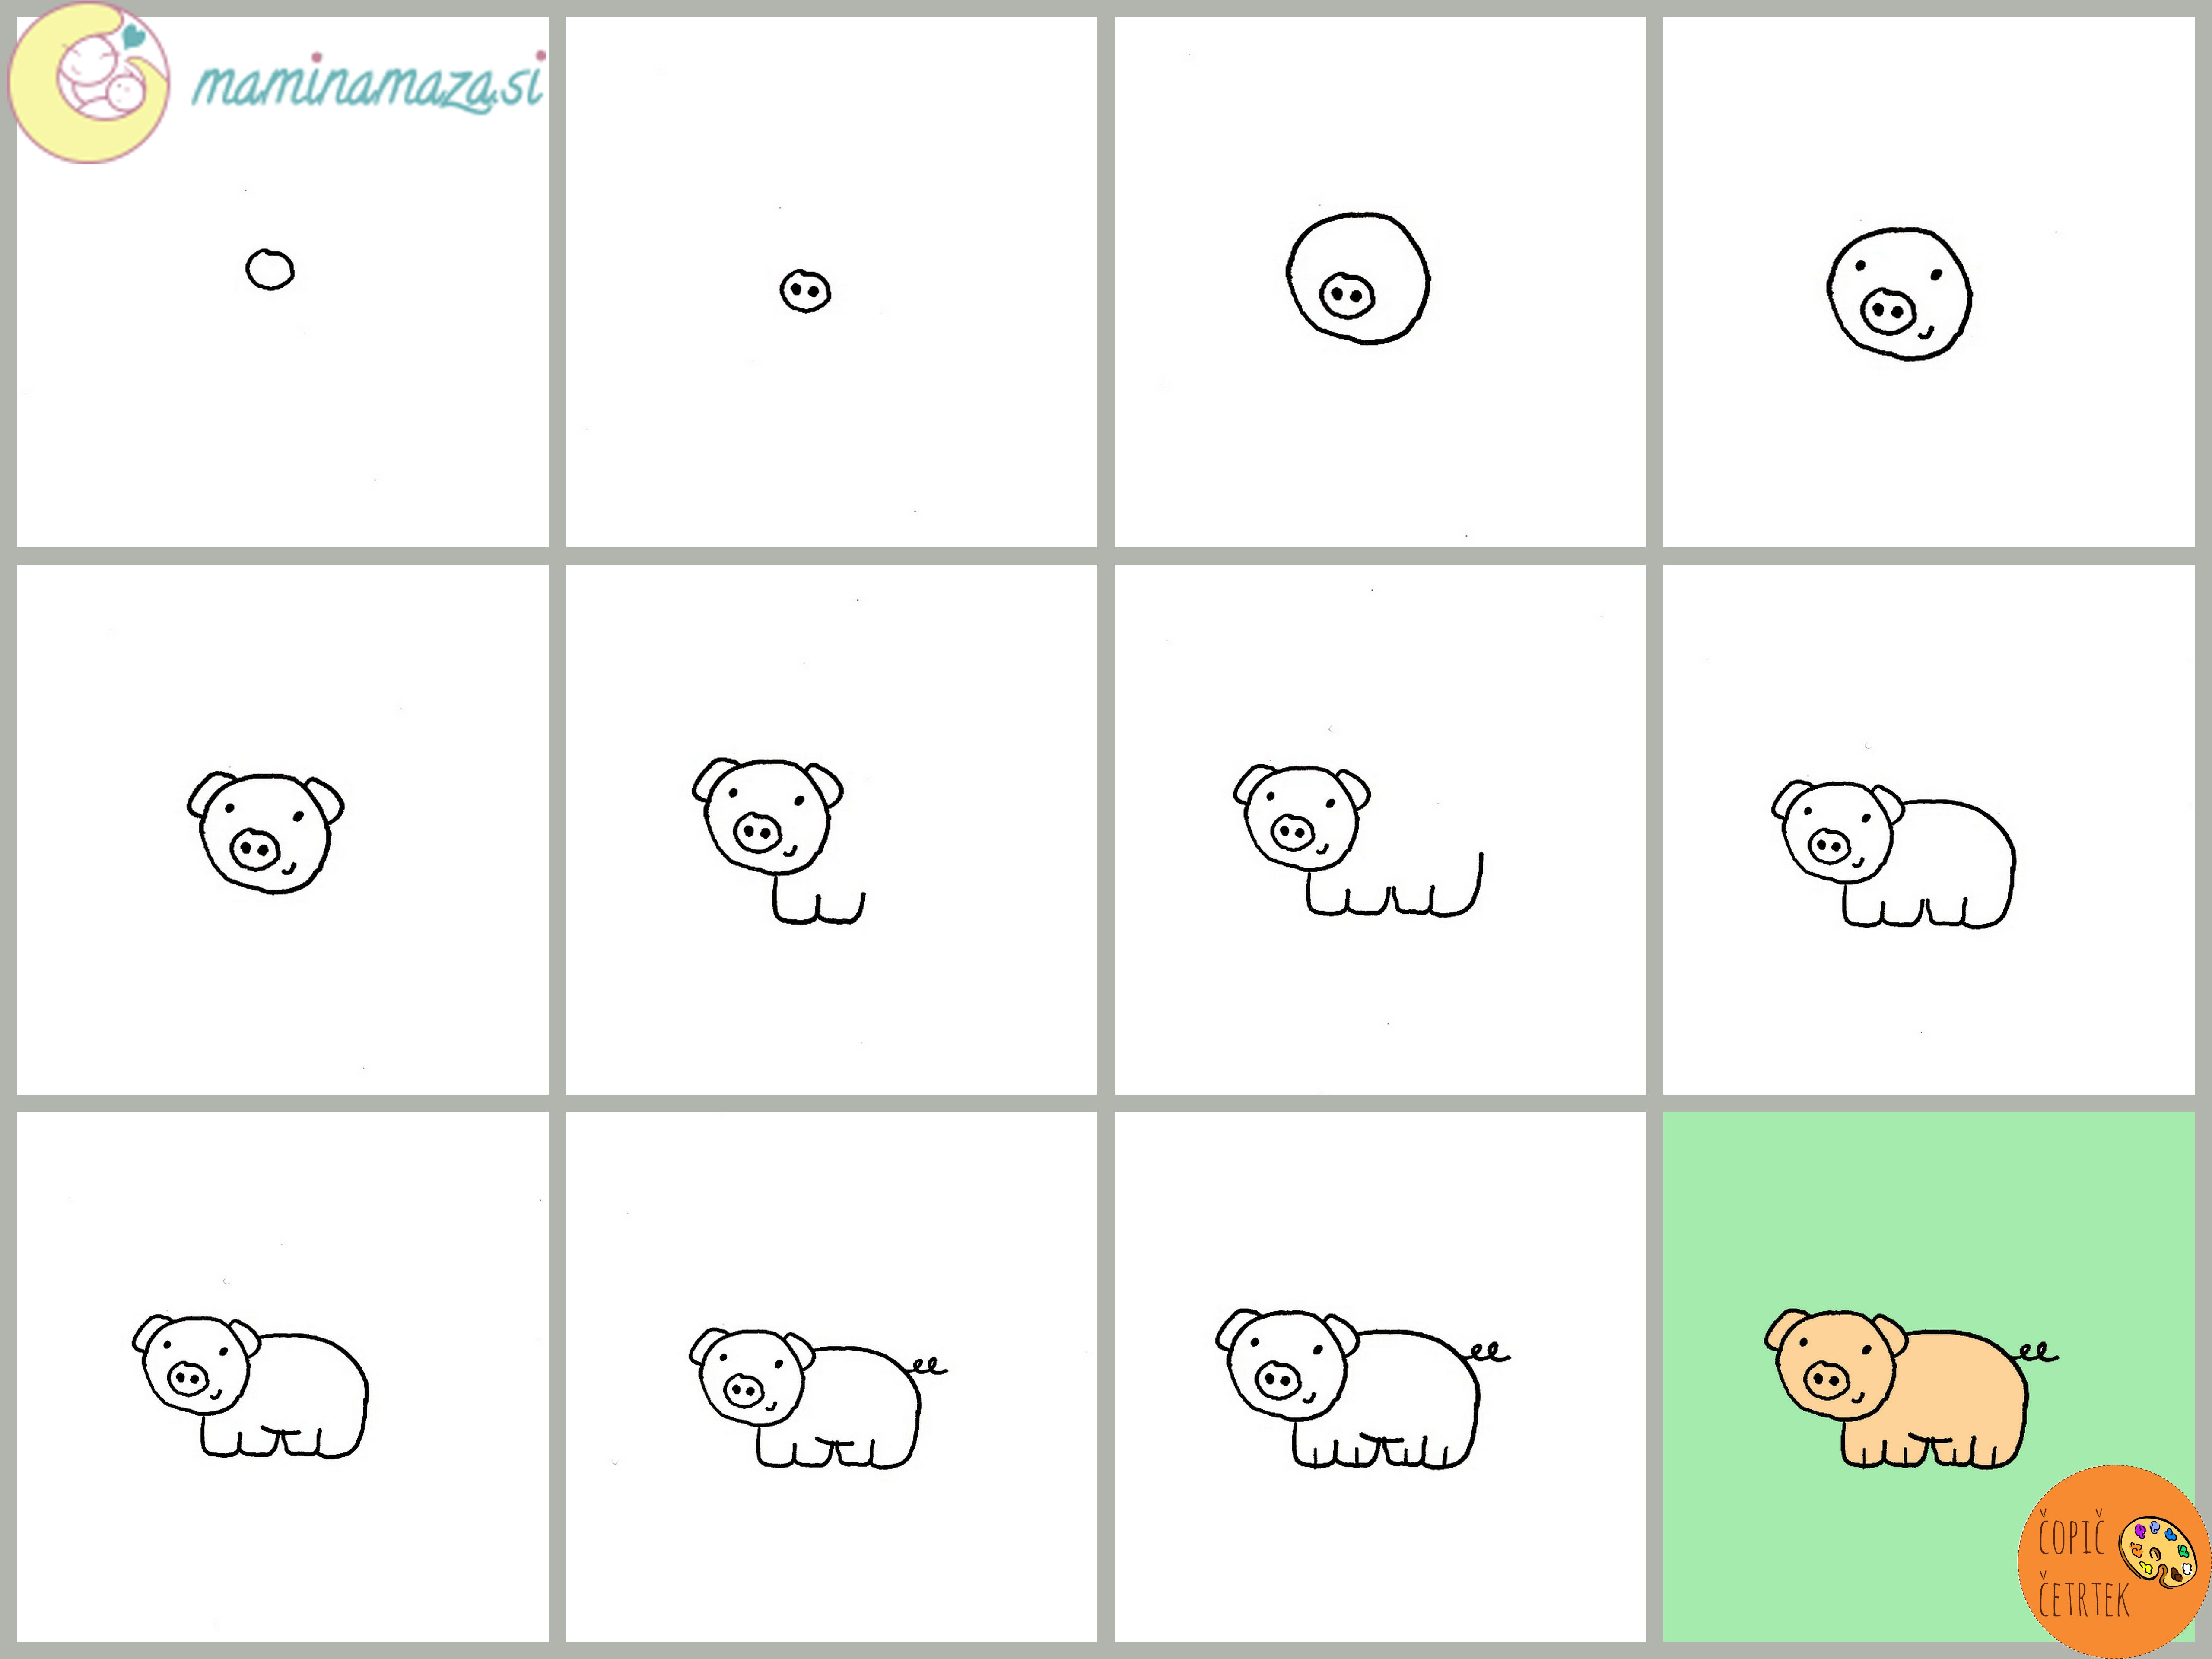 Uncategorized Easy Way To Draw A Pig se risati pujska easy way to draw a pig risanje pig